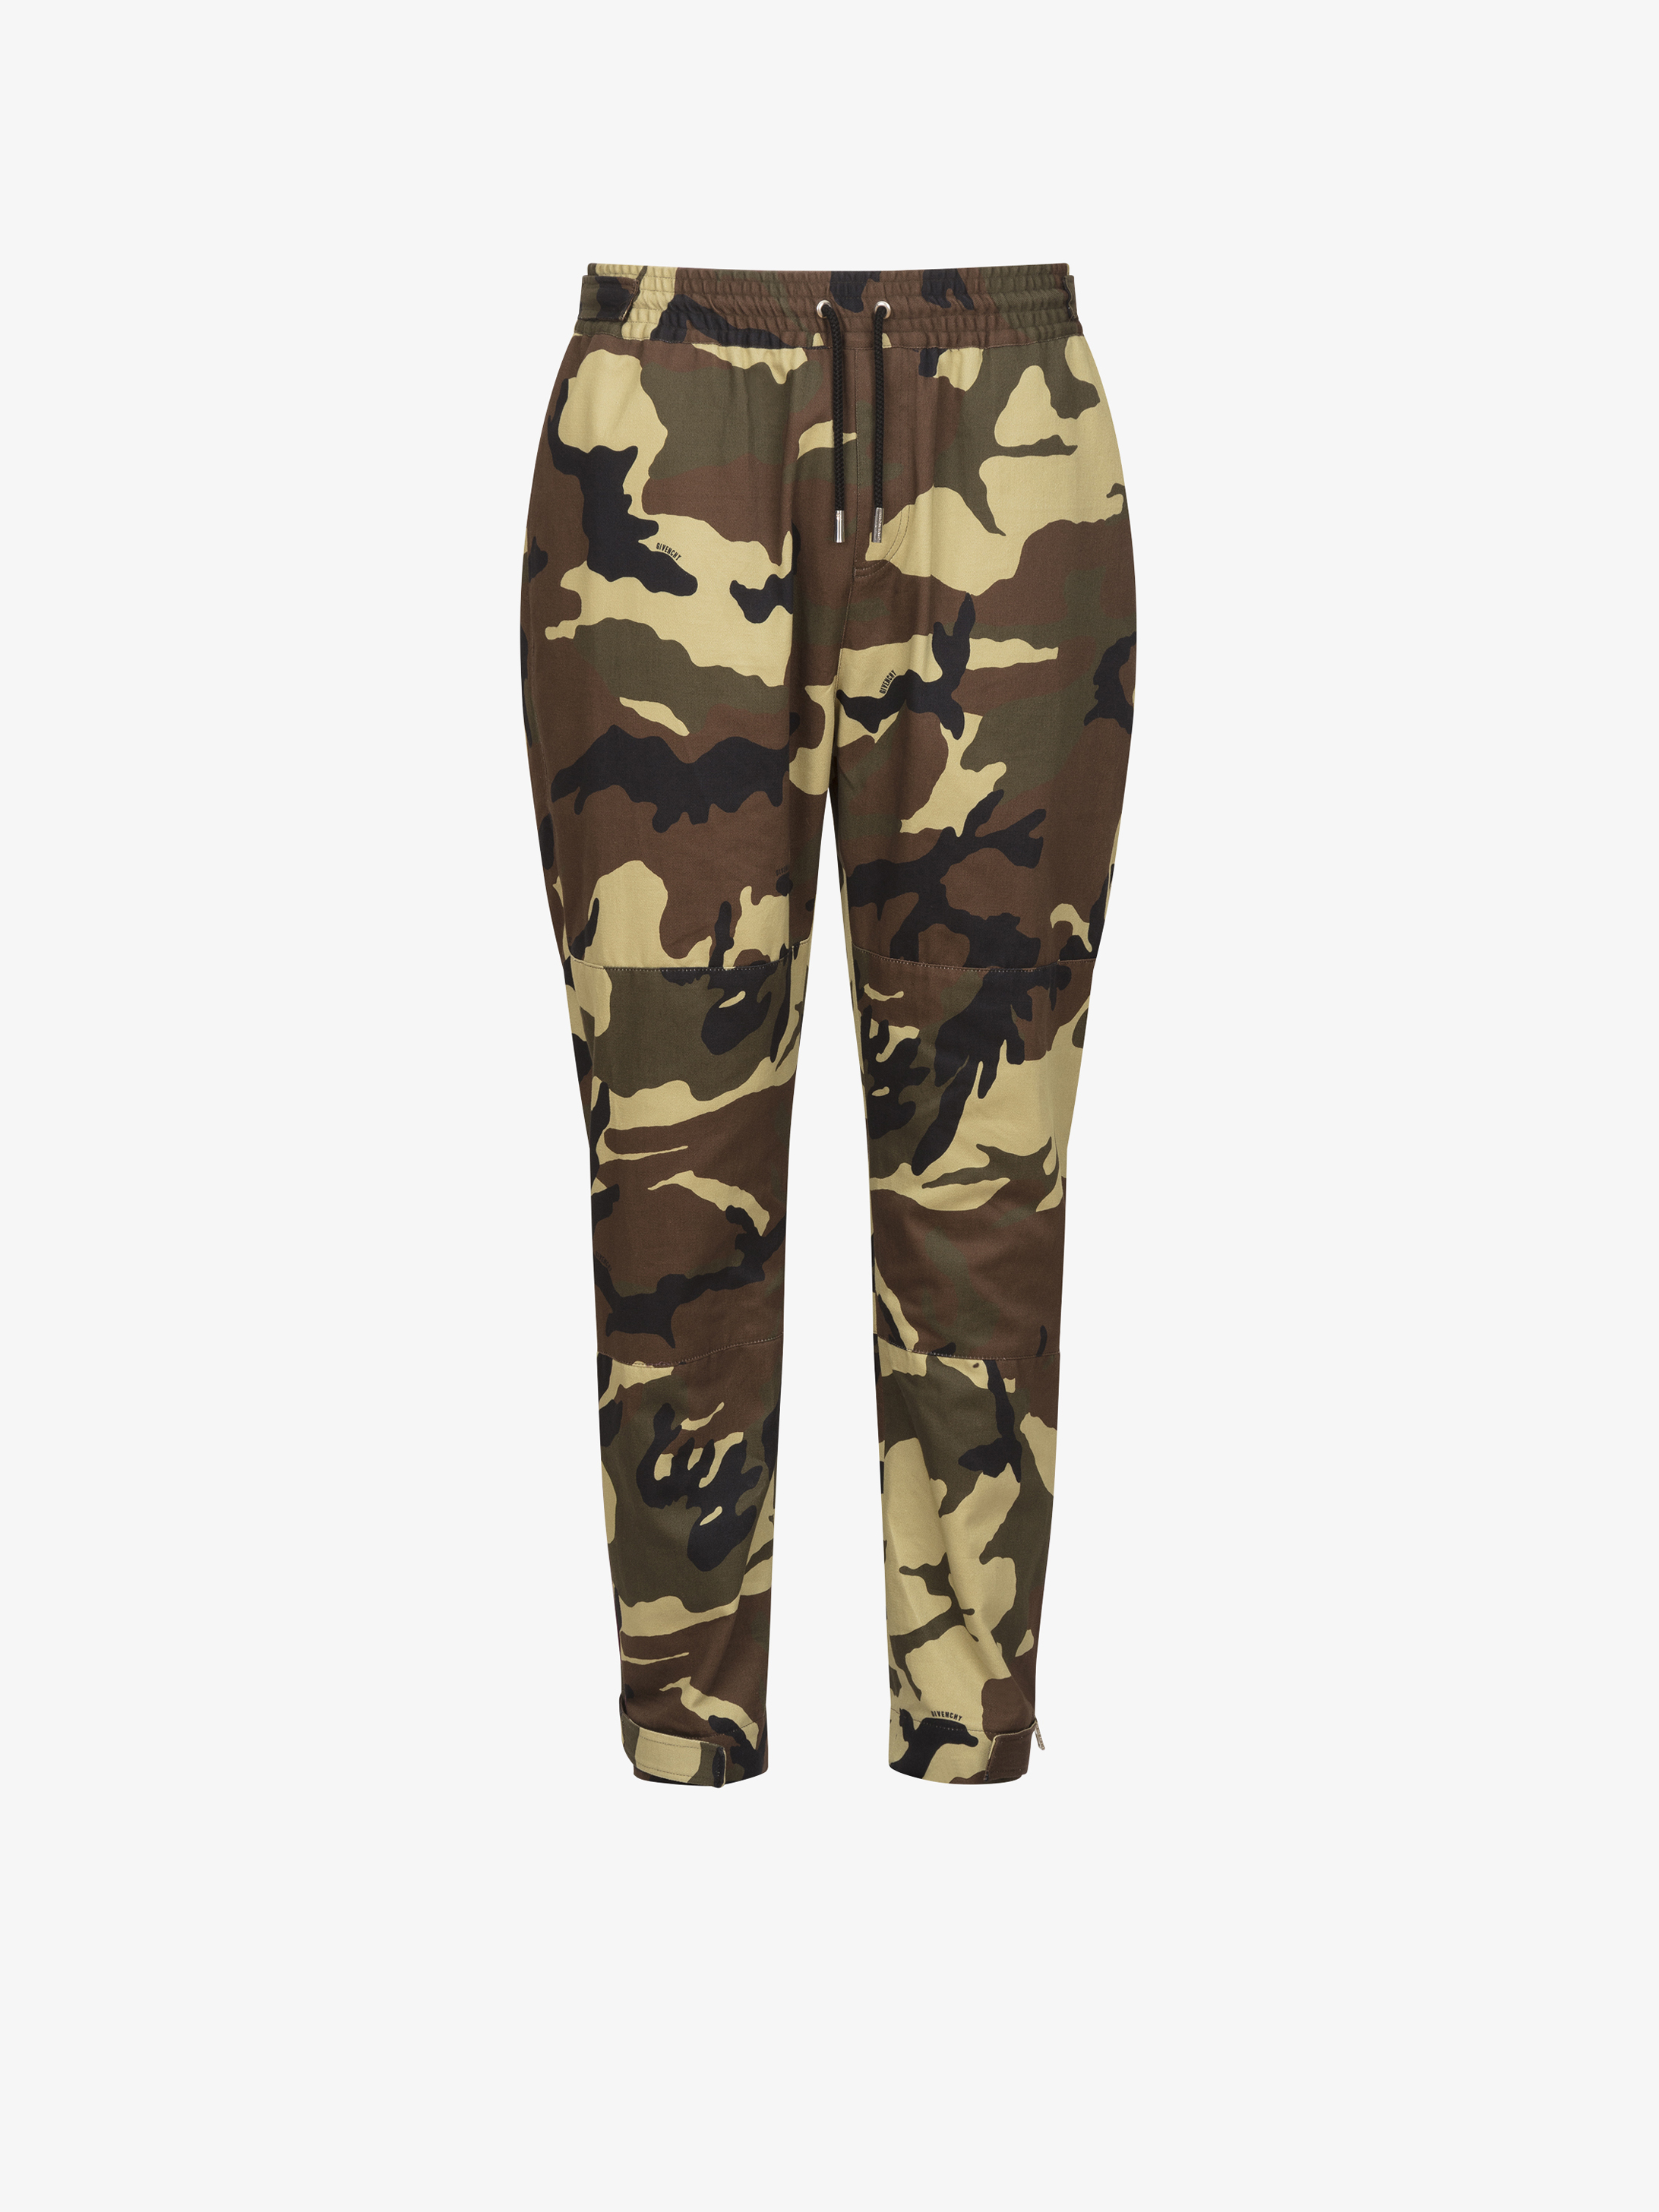 Camo printed trousers